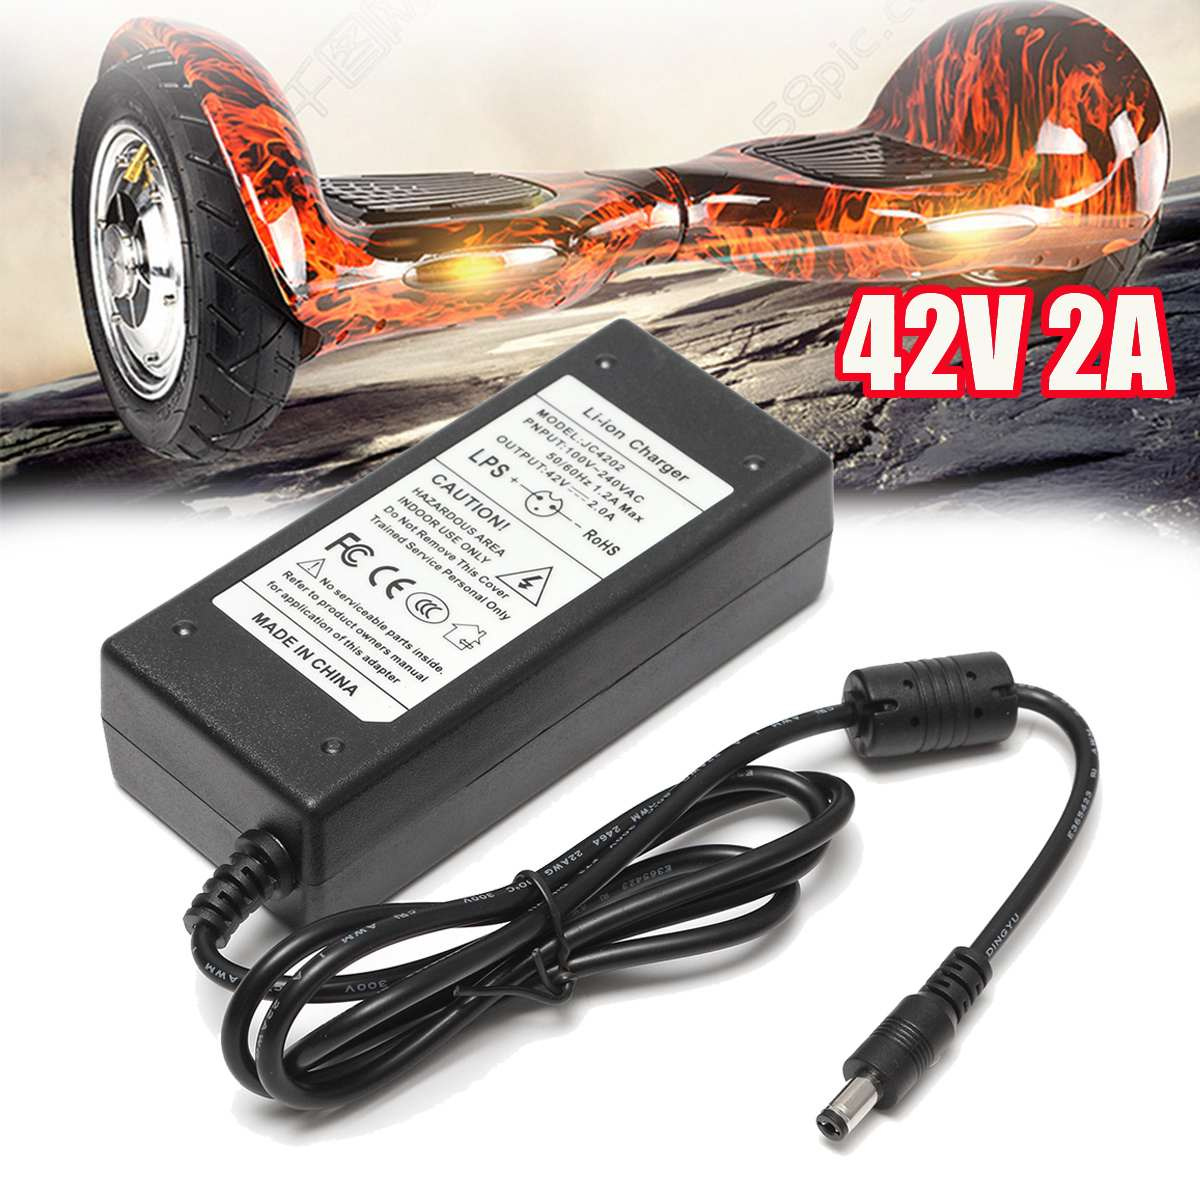 2A 42V Power Charger Adapter For 36V Li-ion Lithium Battery Two-wheel Vehicle Battery Chargers